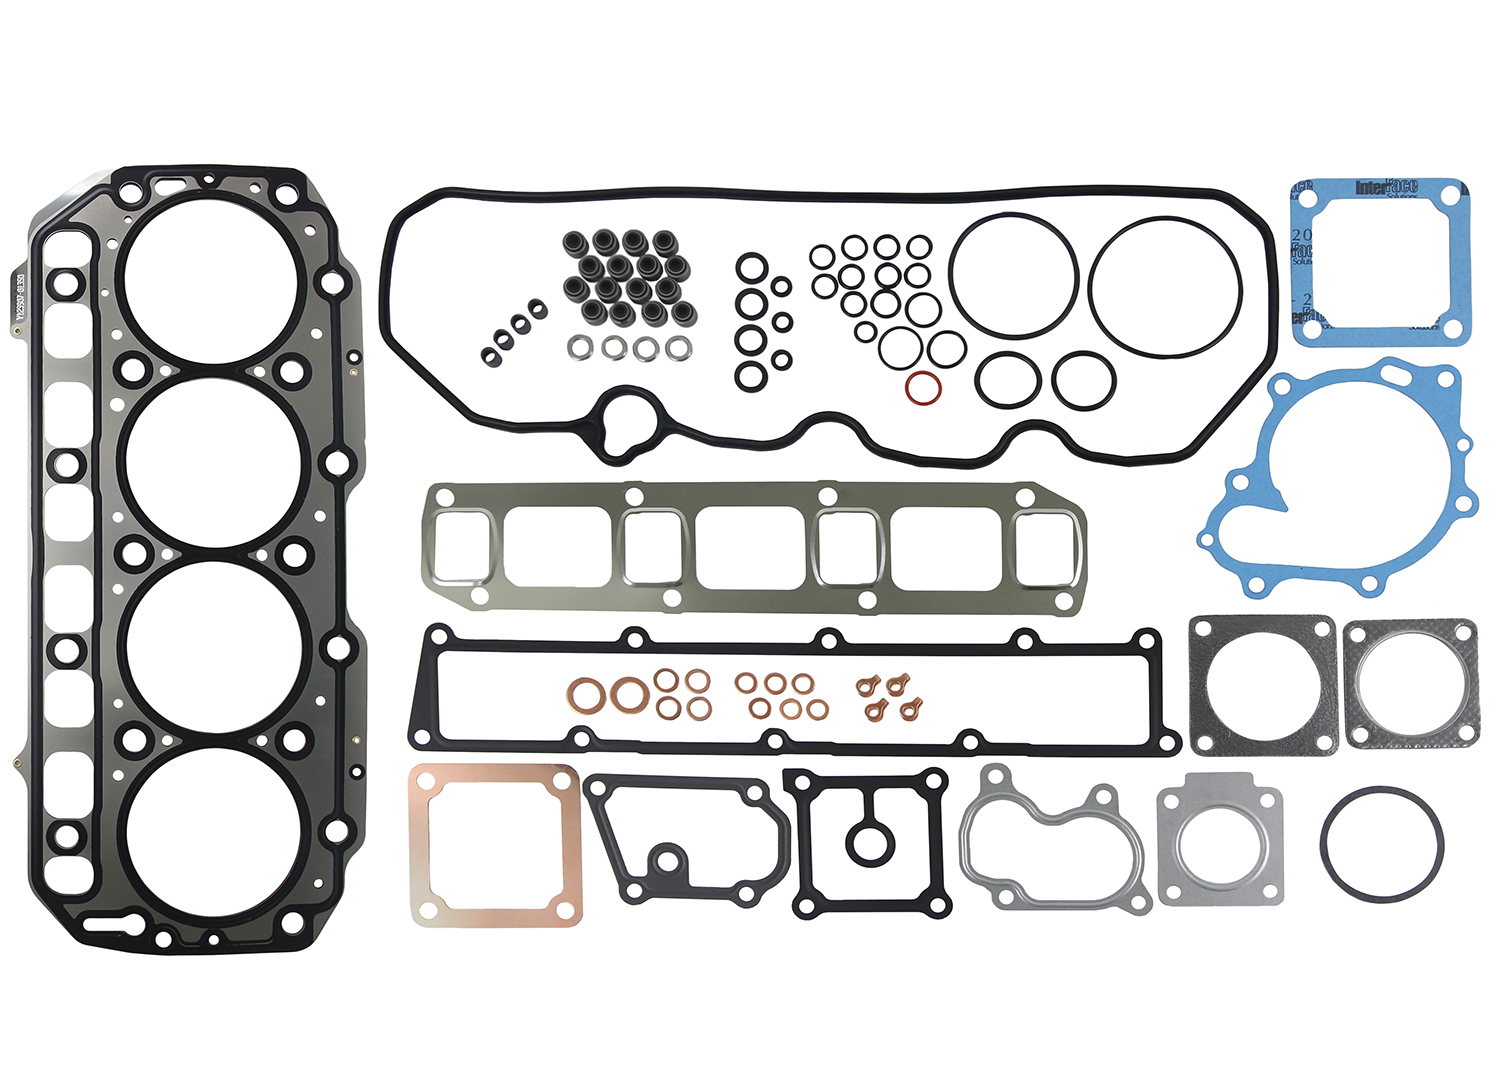 New Complete Engine Rebuild Kit Fits Yanmar Engine 4tnv106